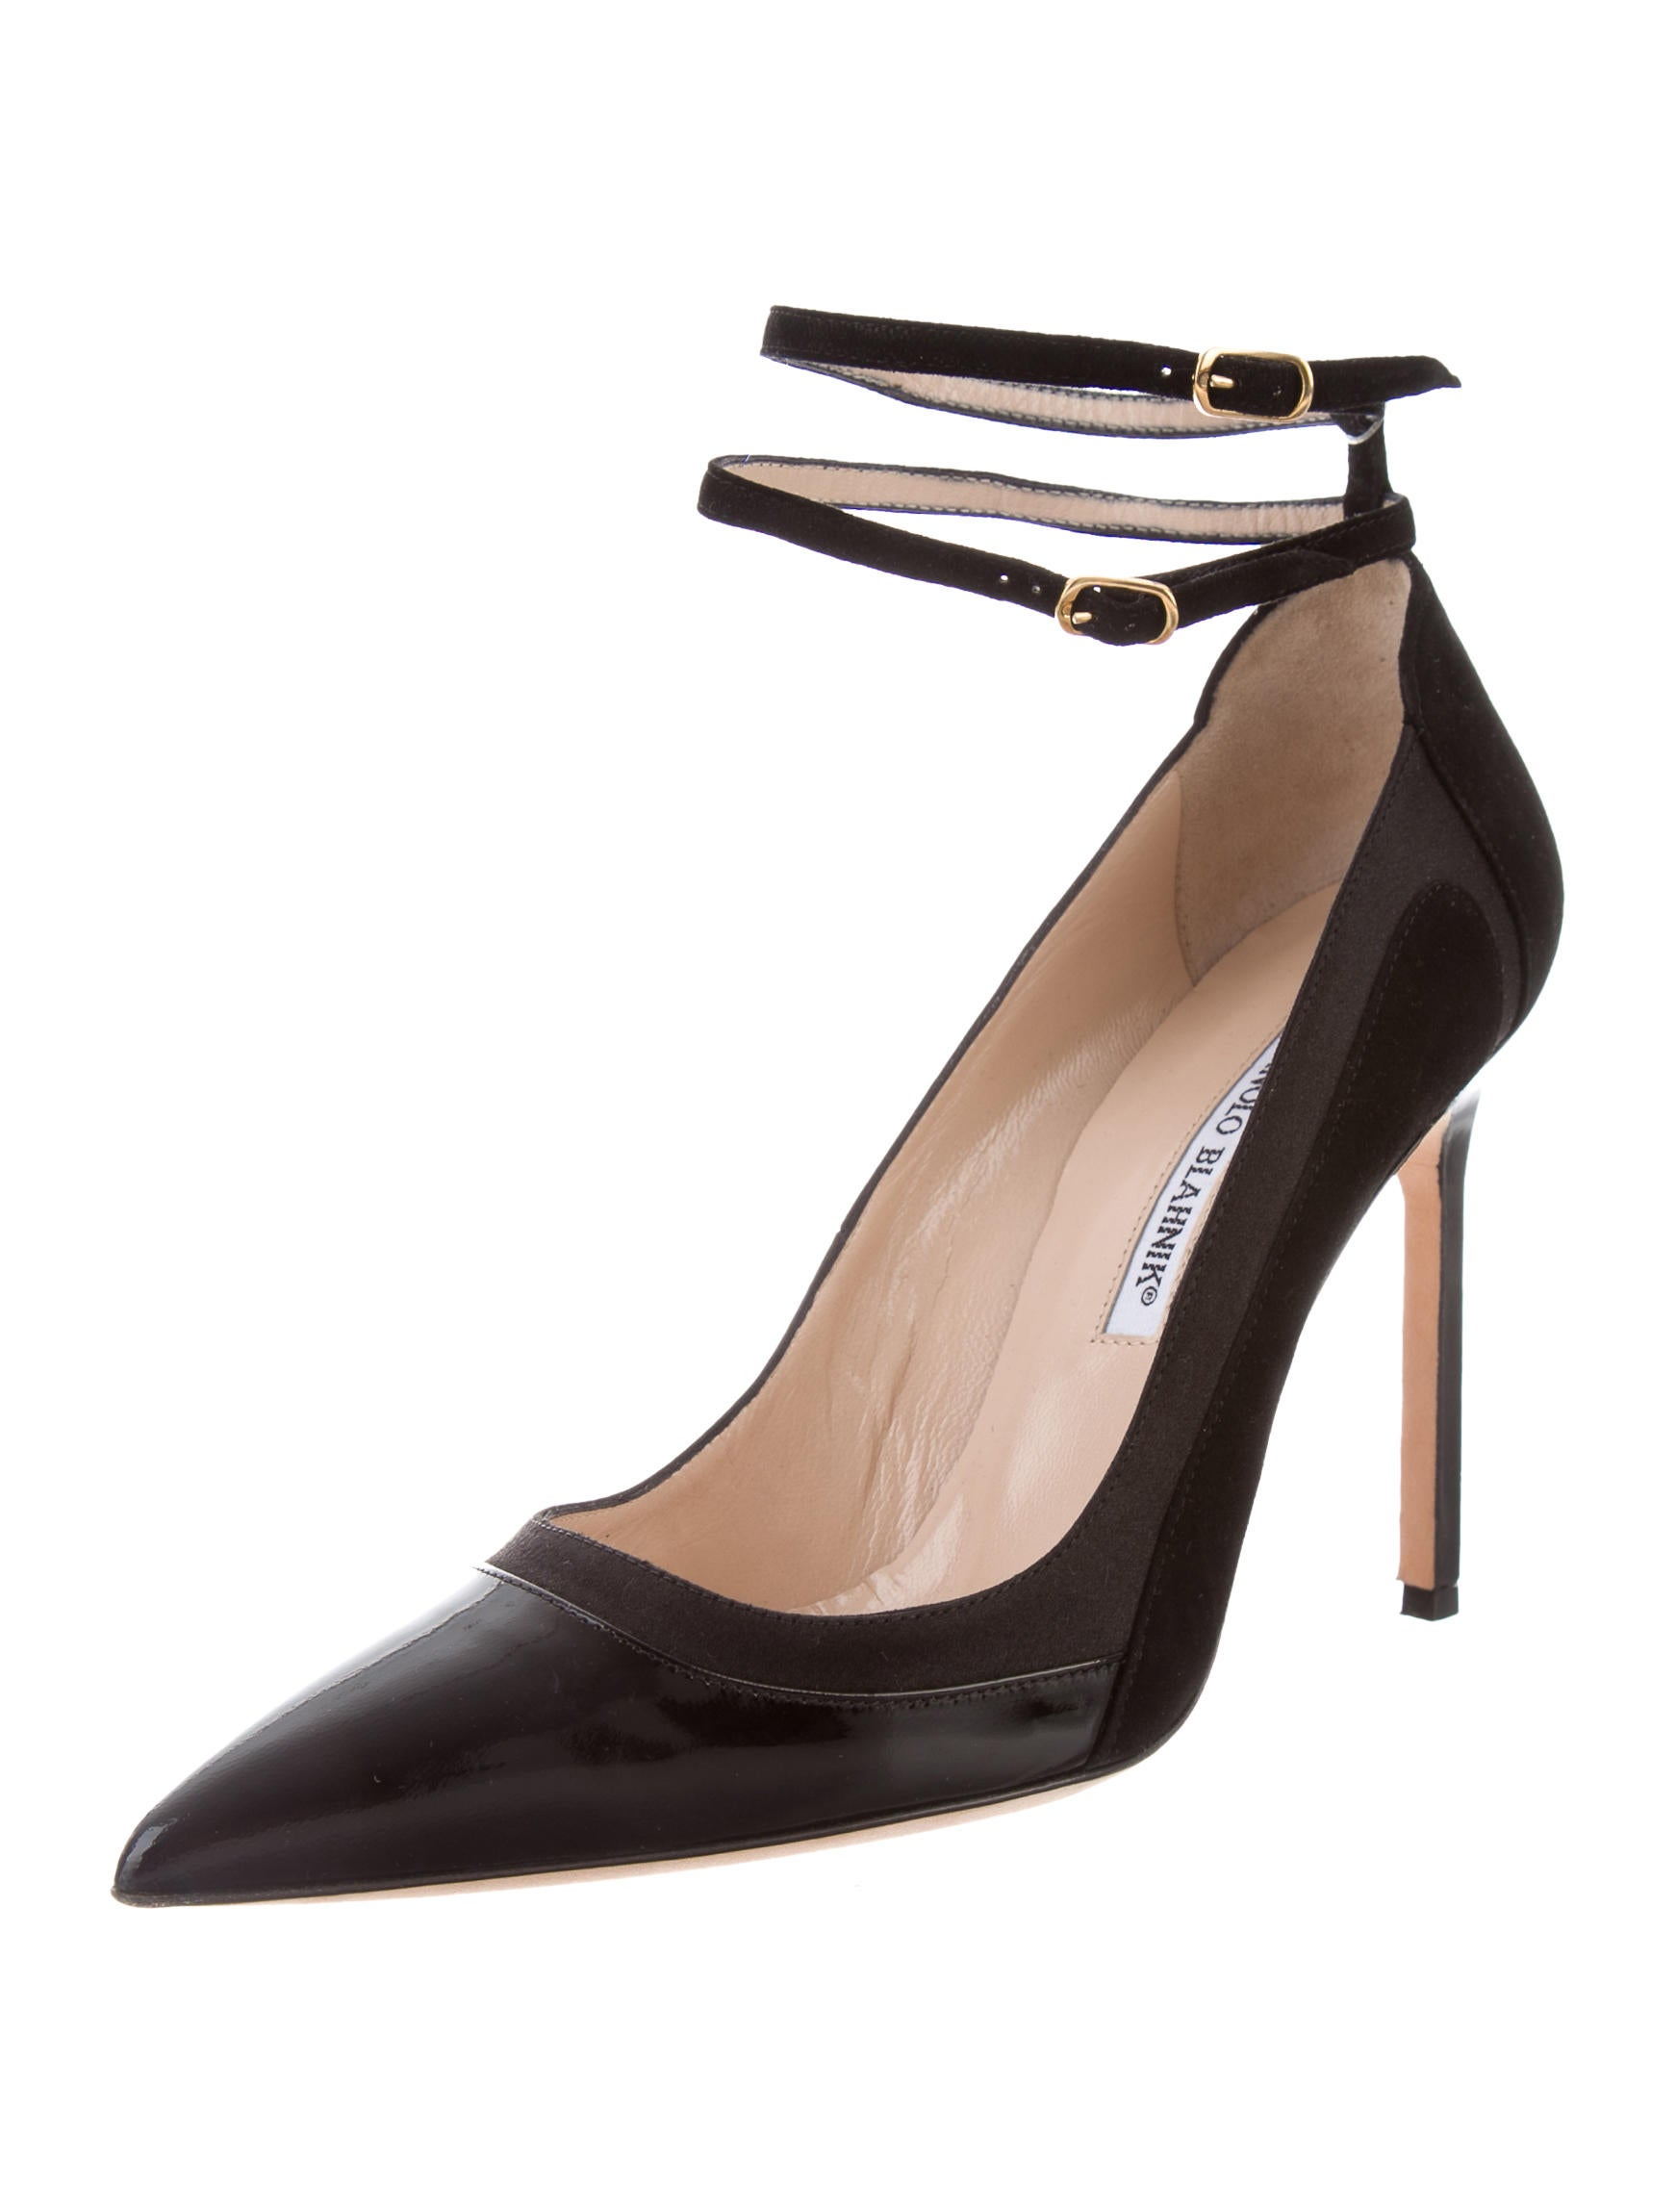 Shop women pumps online from grounwhijwgg.cf, we provide various quality high heels in the latest style with affordable price. What kind of the style of women shoes is your favorite, here you can find all kinds of styles, like ankle strap platform pumps, ankle strap pointed toe pumps, chunky heel pumps, gladiator heels, leopard print high heels, no heel platform shoe, peep toe pumps.